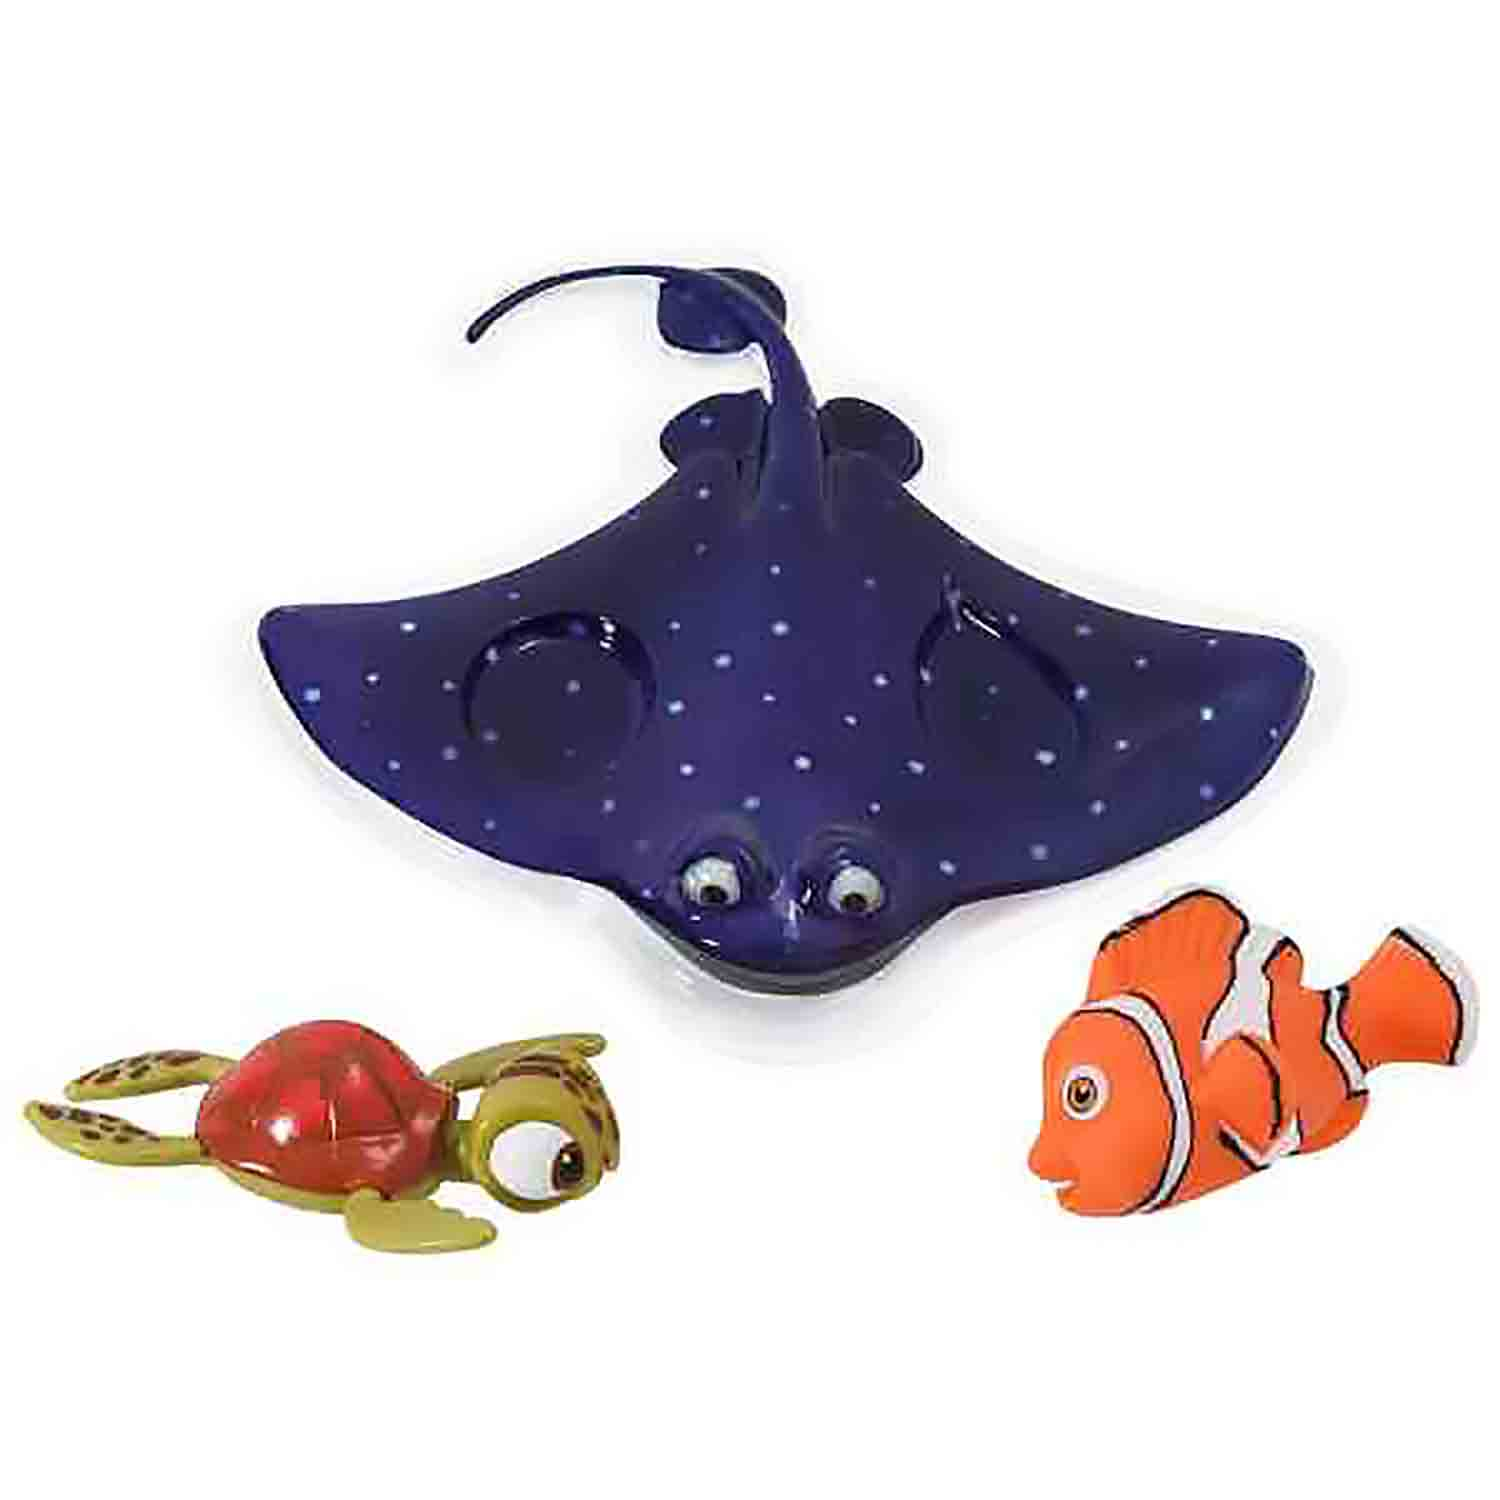 Nemo and Squirt Decoset